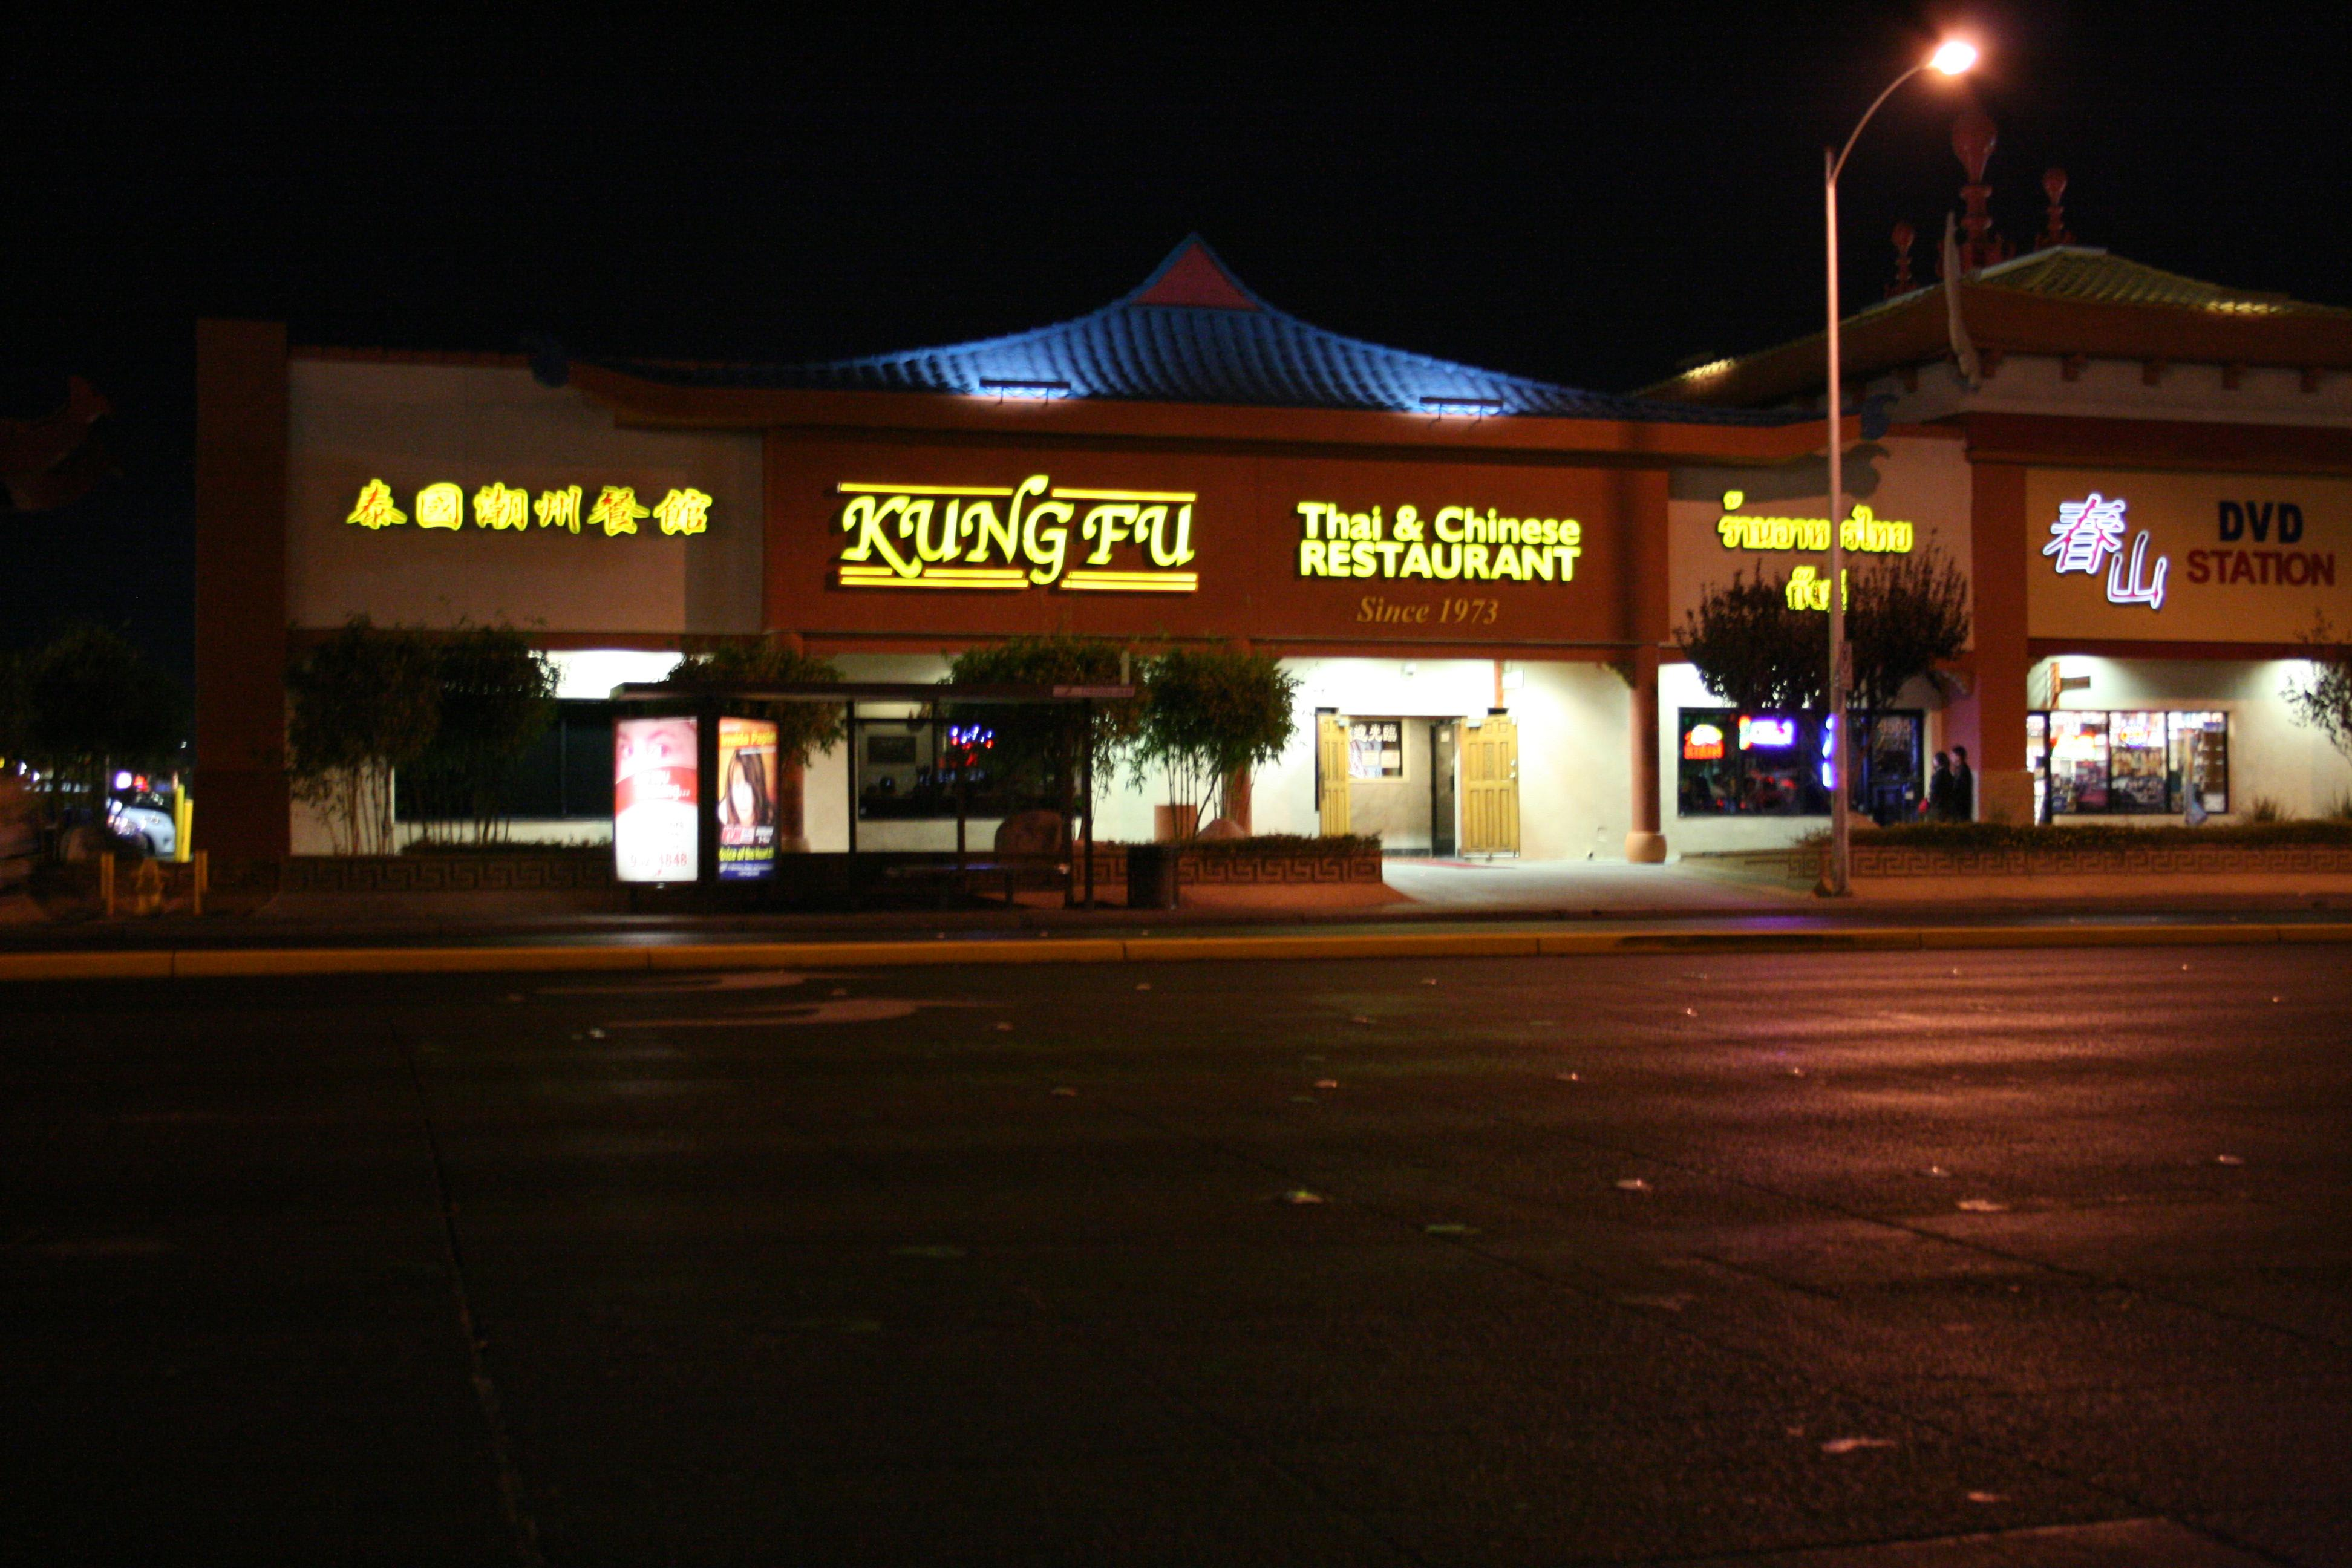 Photo at Kung Fu Thai & Chinese